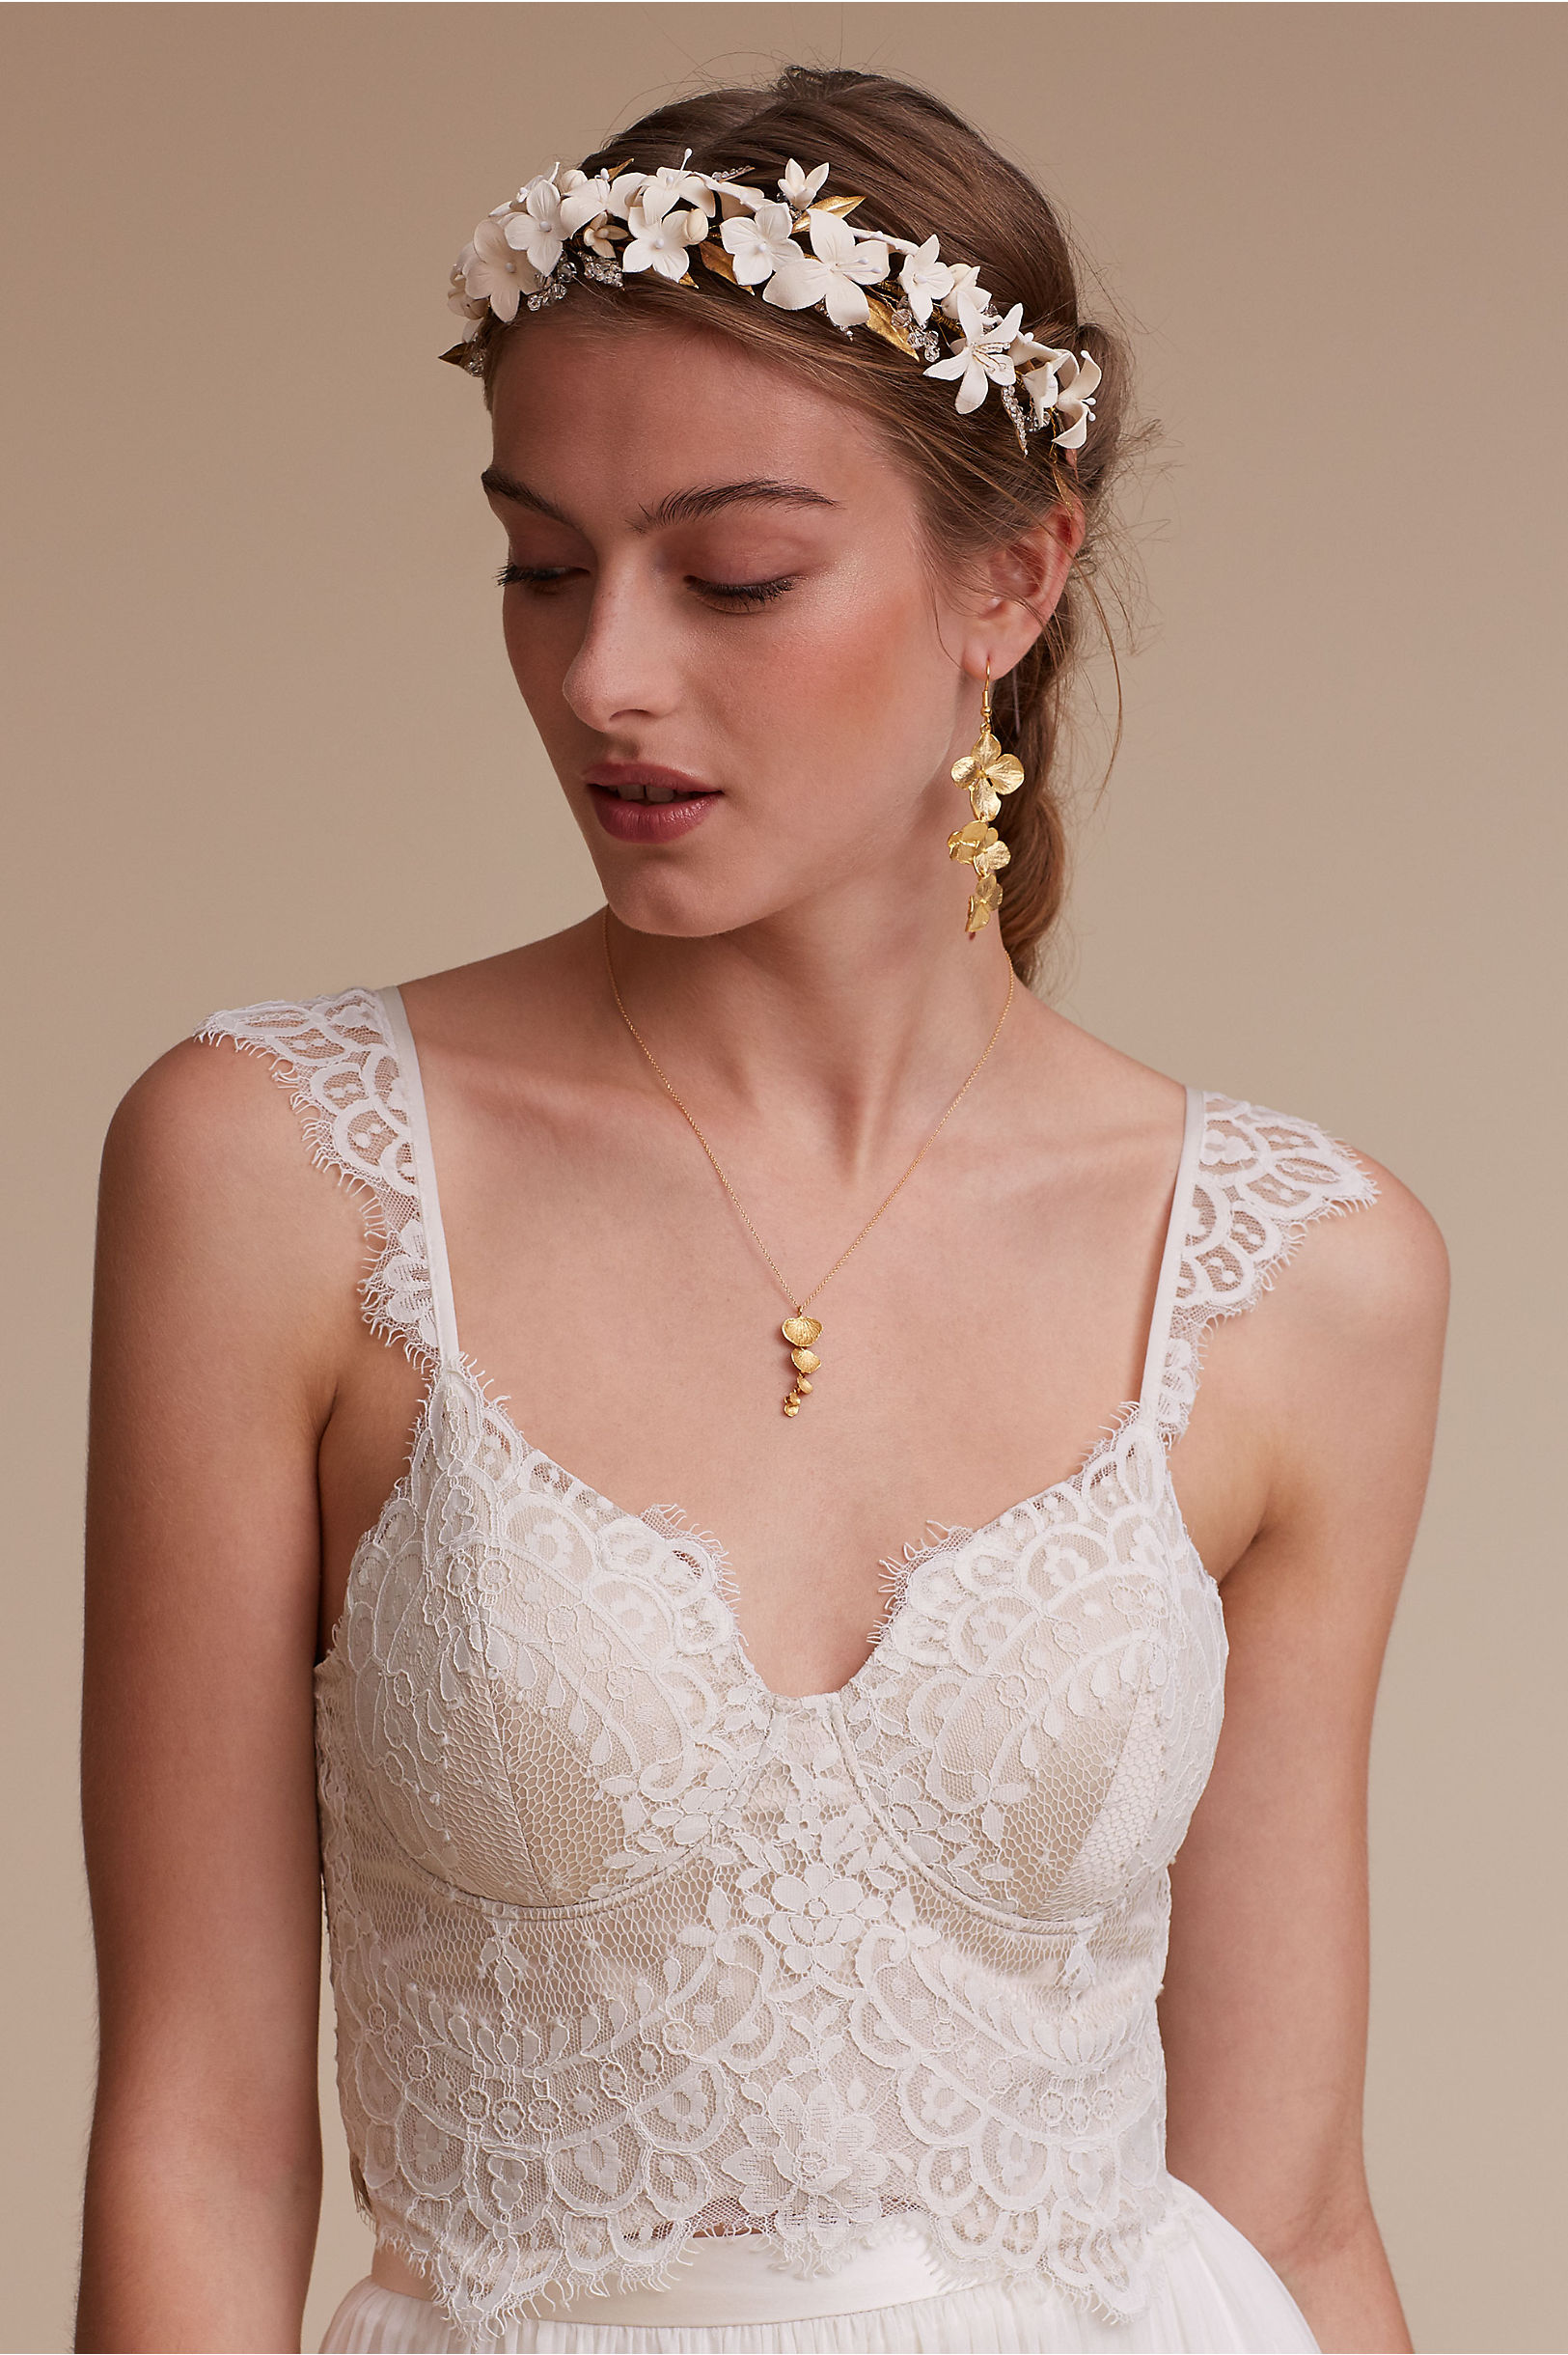 wedding nbm tahitian by layered necklace tiongco gown magazine jody earrings mon salon pearl amie beach bridal at paige dress hayley newport bliss jewelry attire